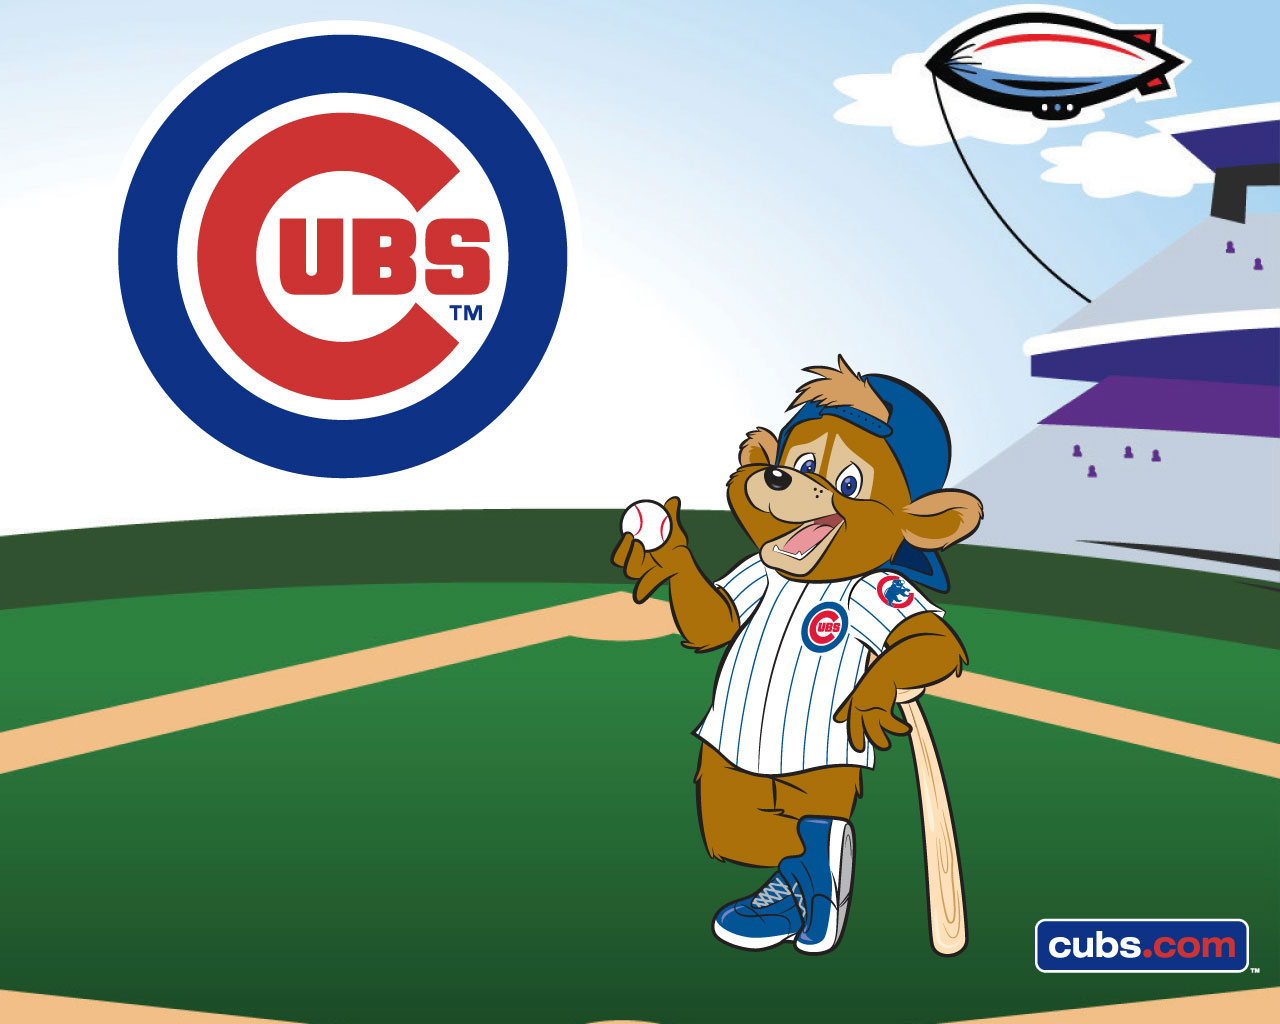 Clark S Crew Fun And Games Chicago Cubs